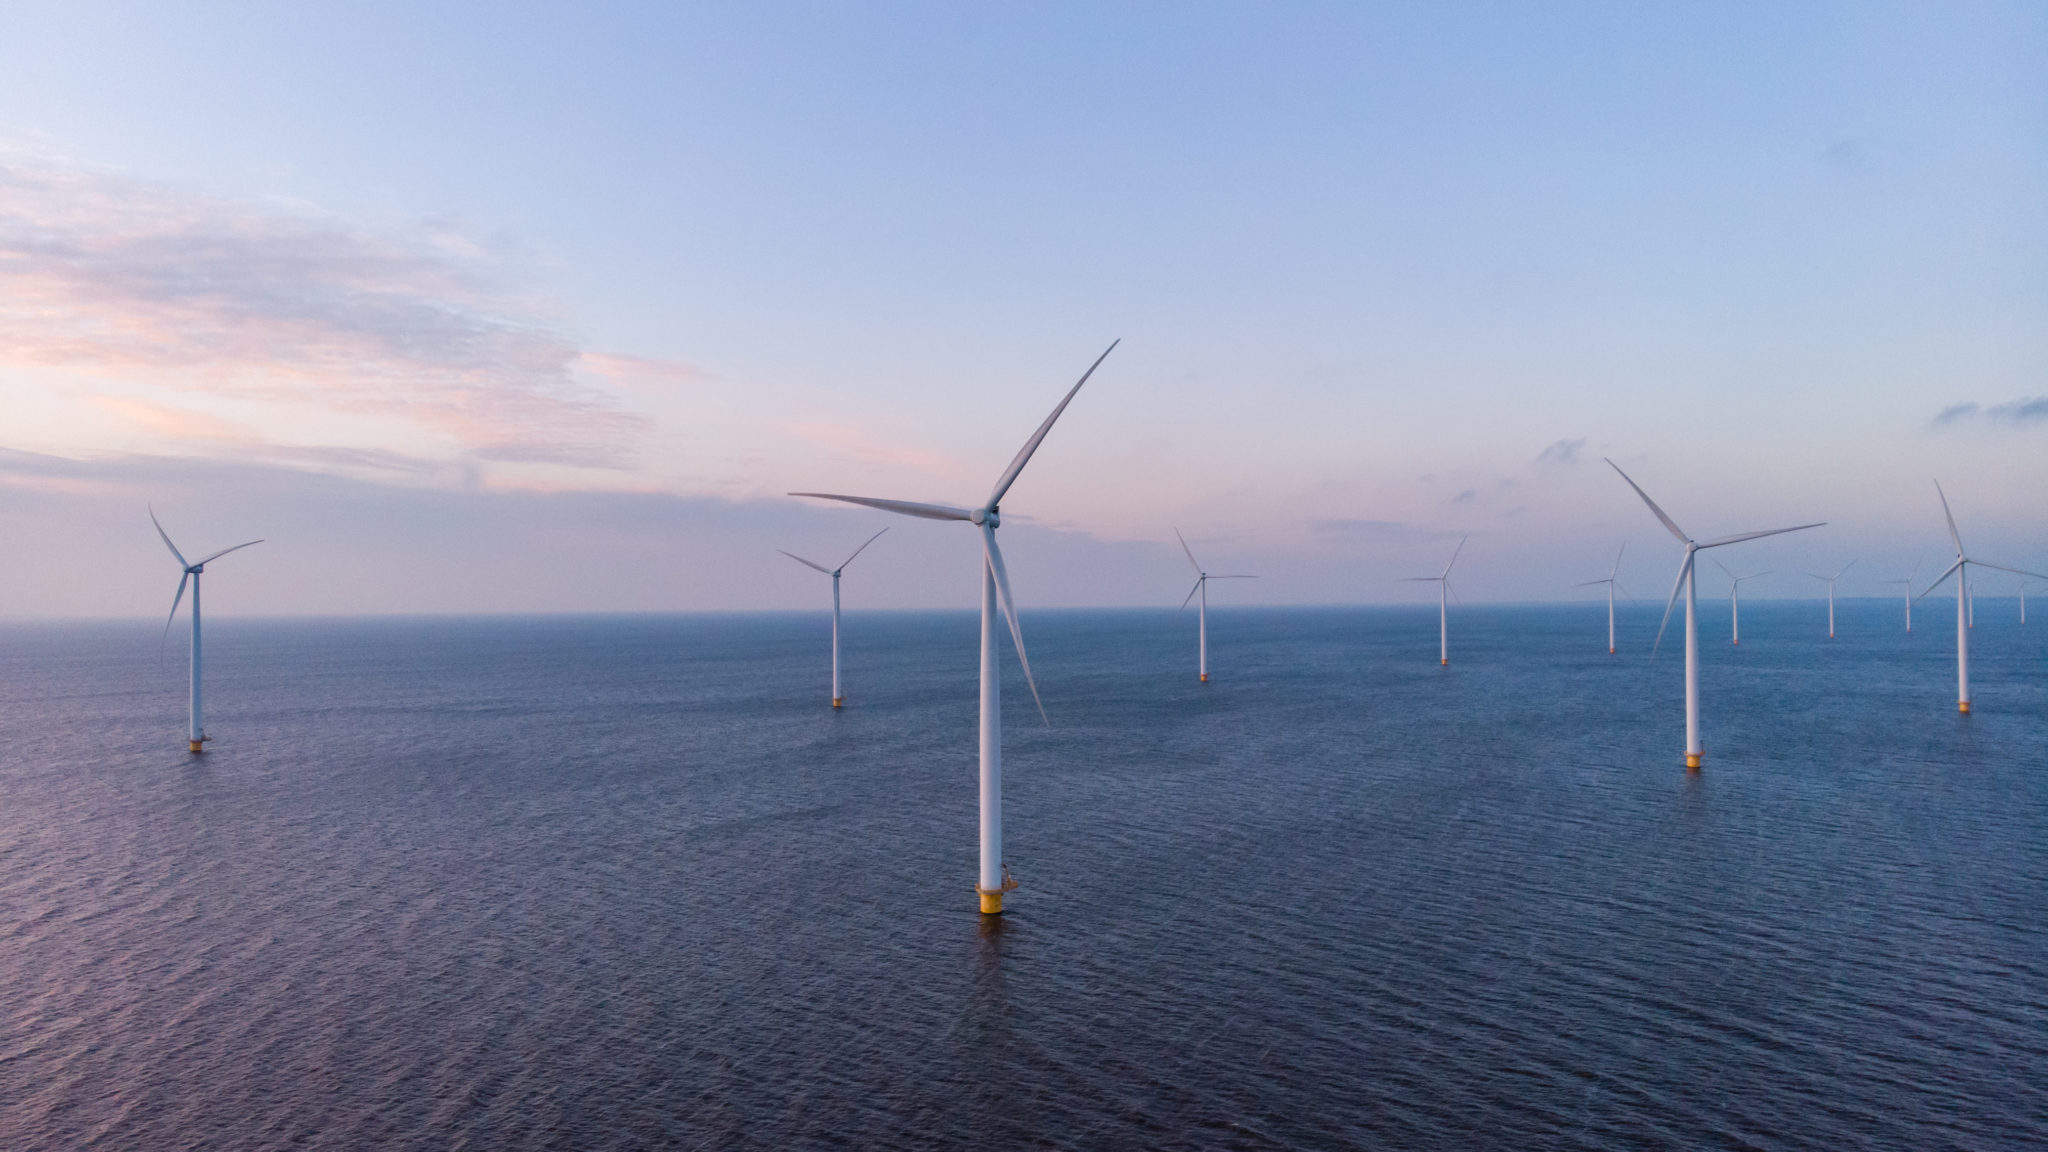 Aberdeen University researchers taking part in wind farm decommissioning study